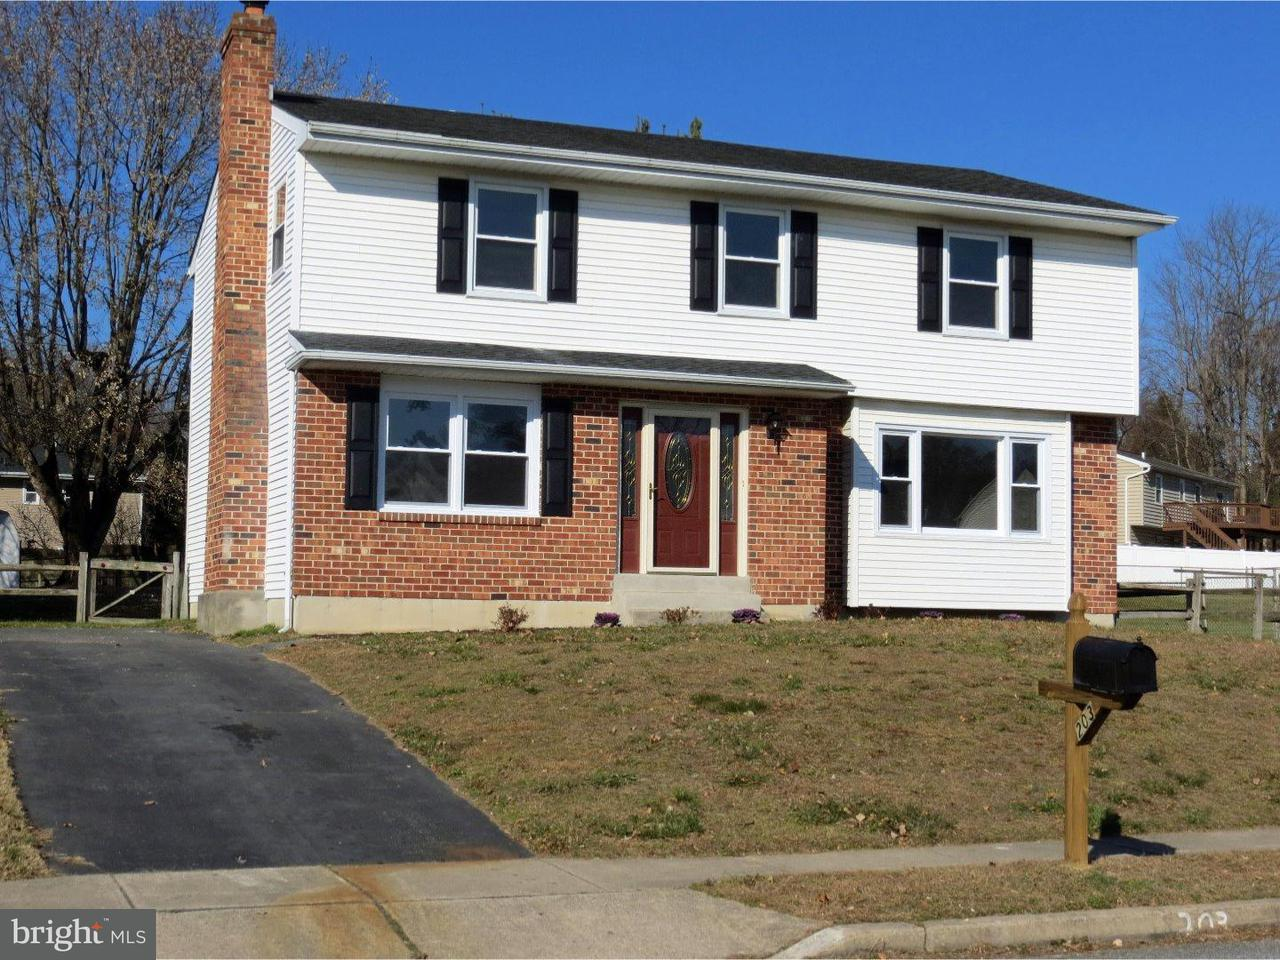 Single Family Home for Sale at 203 EMILY Lane Boothwyn, Pennsylvania 19061 United States